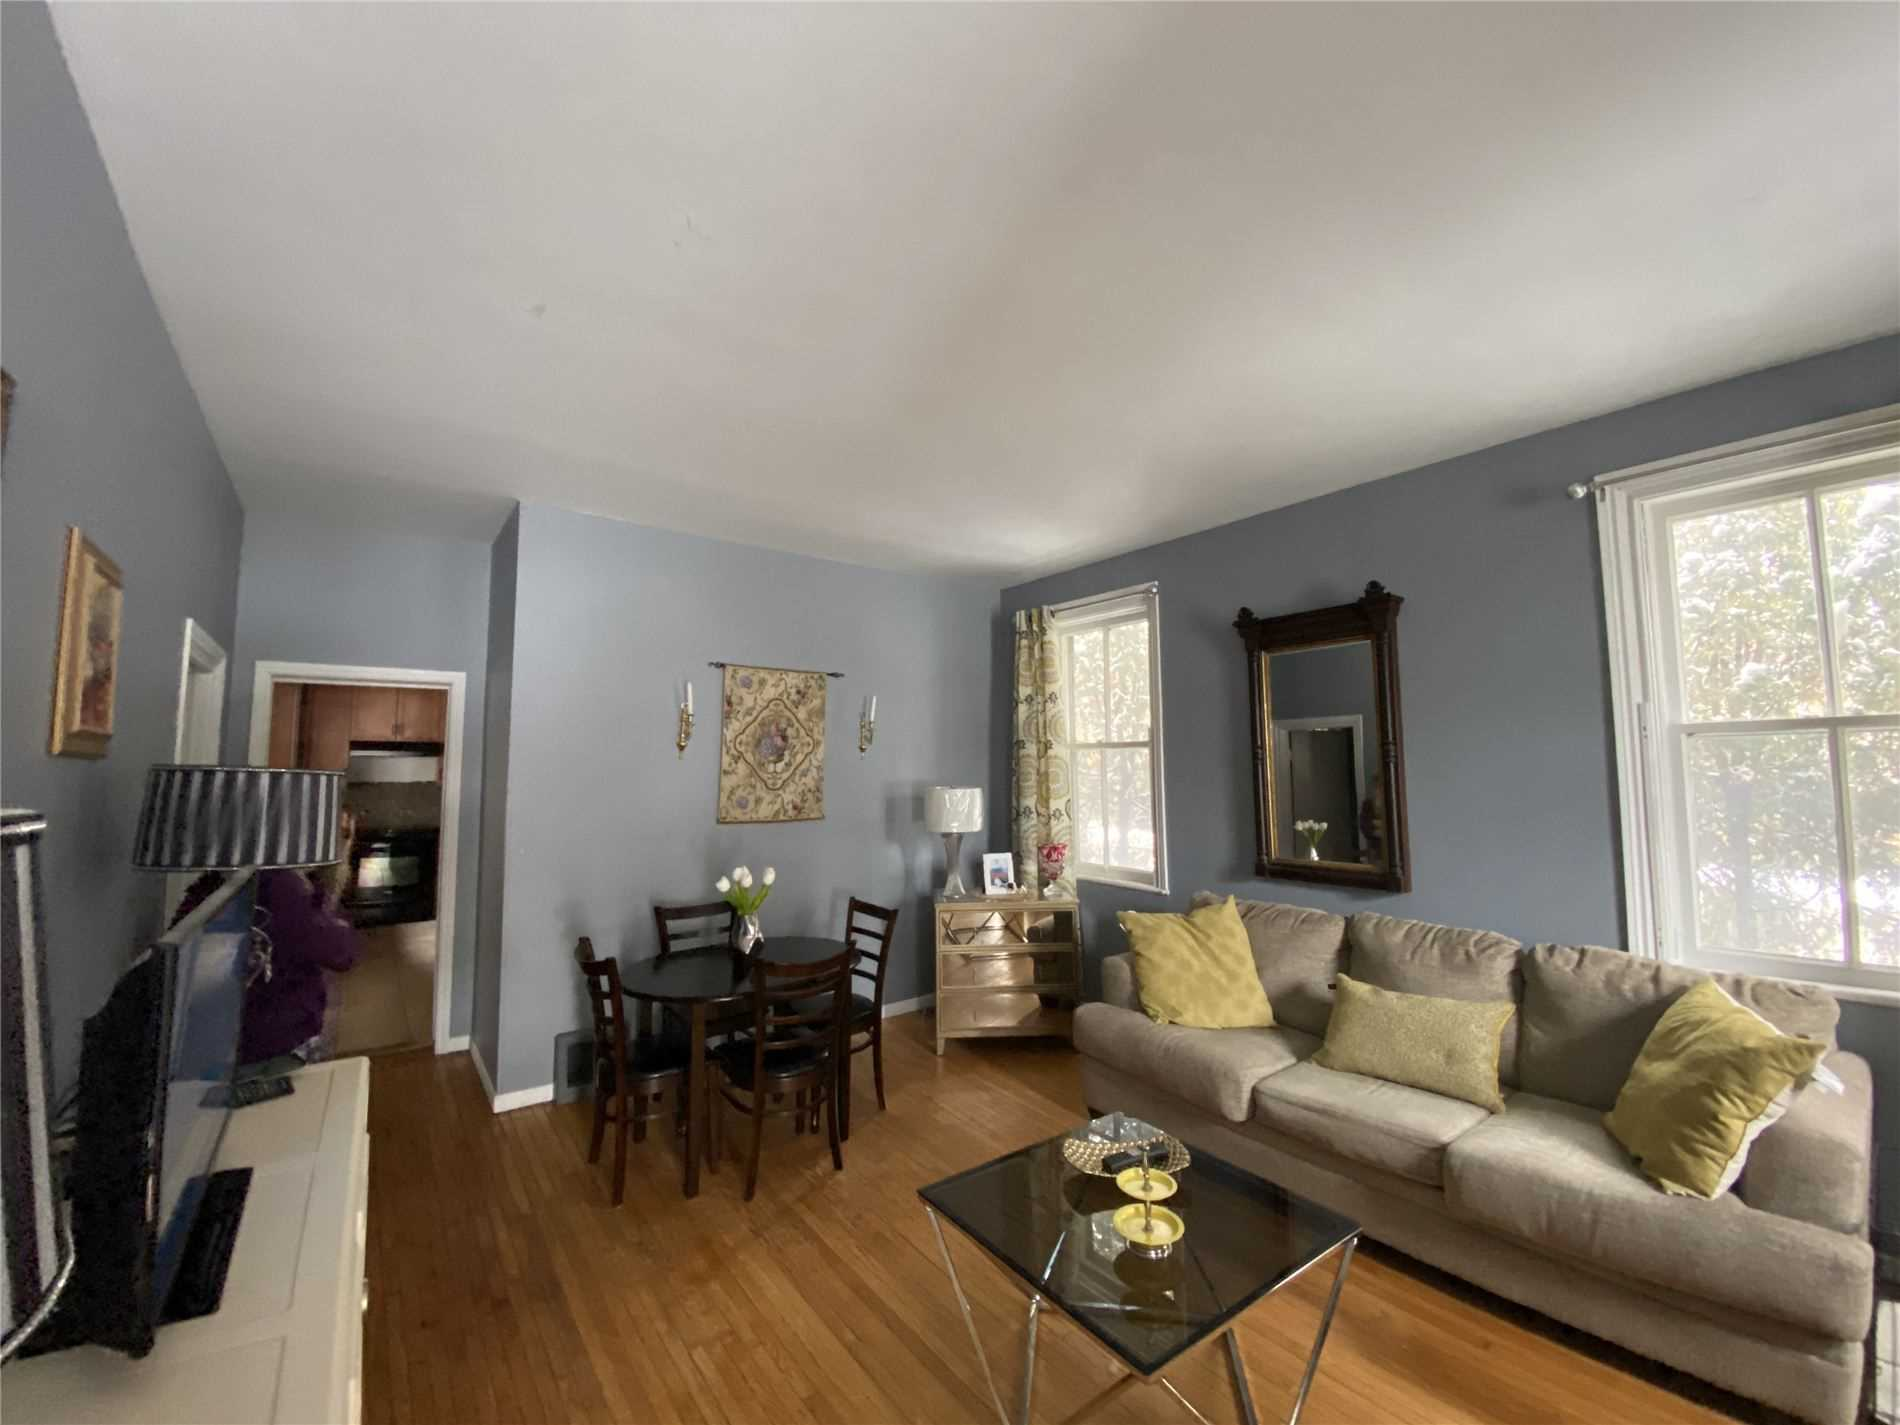 Image 3 of 8 showing inside of 2 Bedroom Detached Bungalow house for sale at 88 Delhi St, Guelph N1E4J7